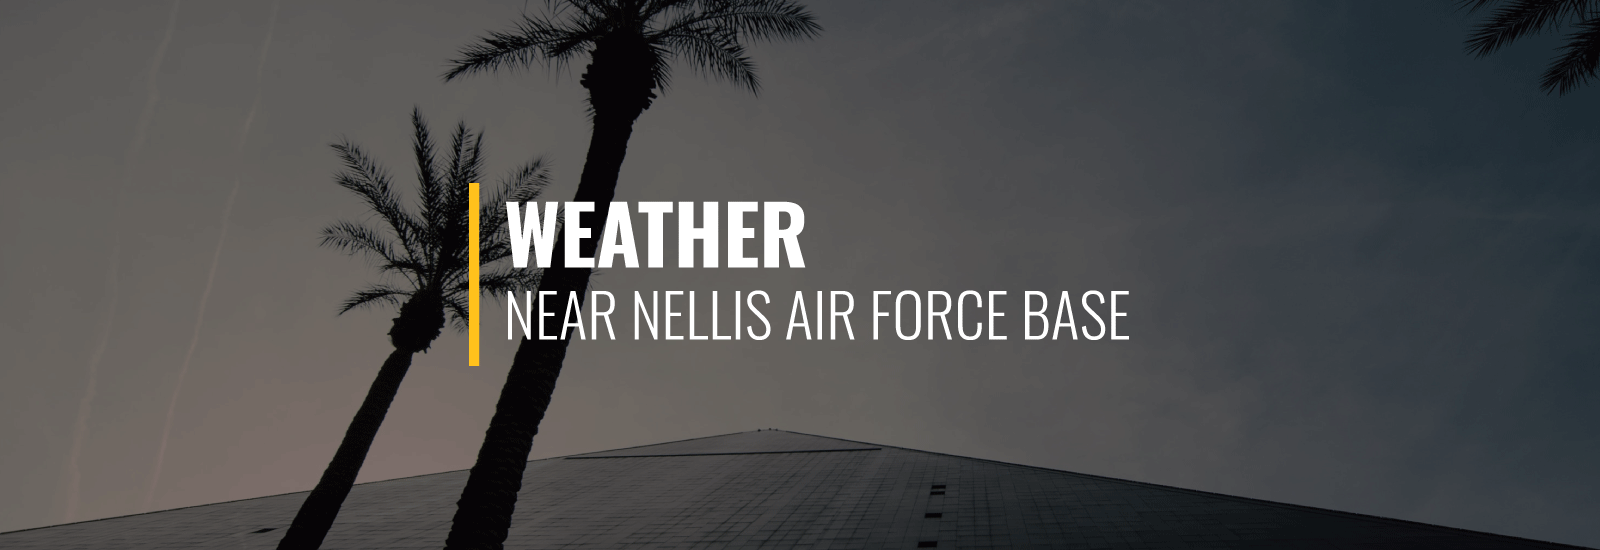 Nellis Air Force Base Weather